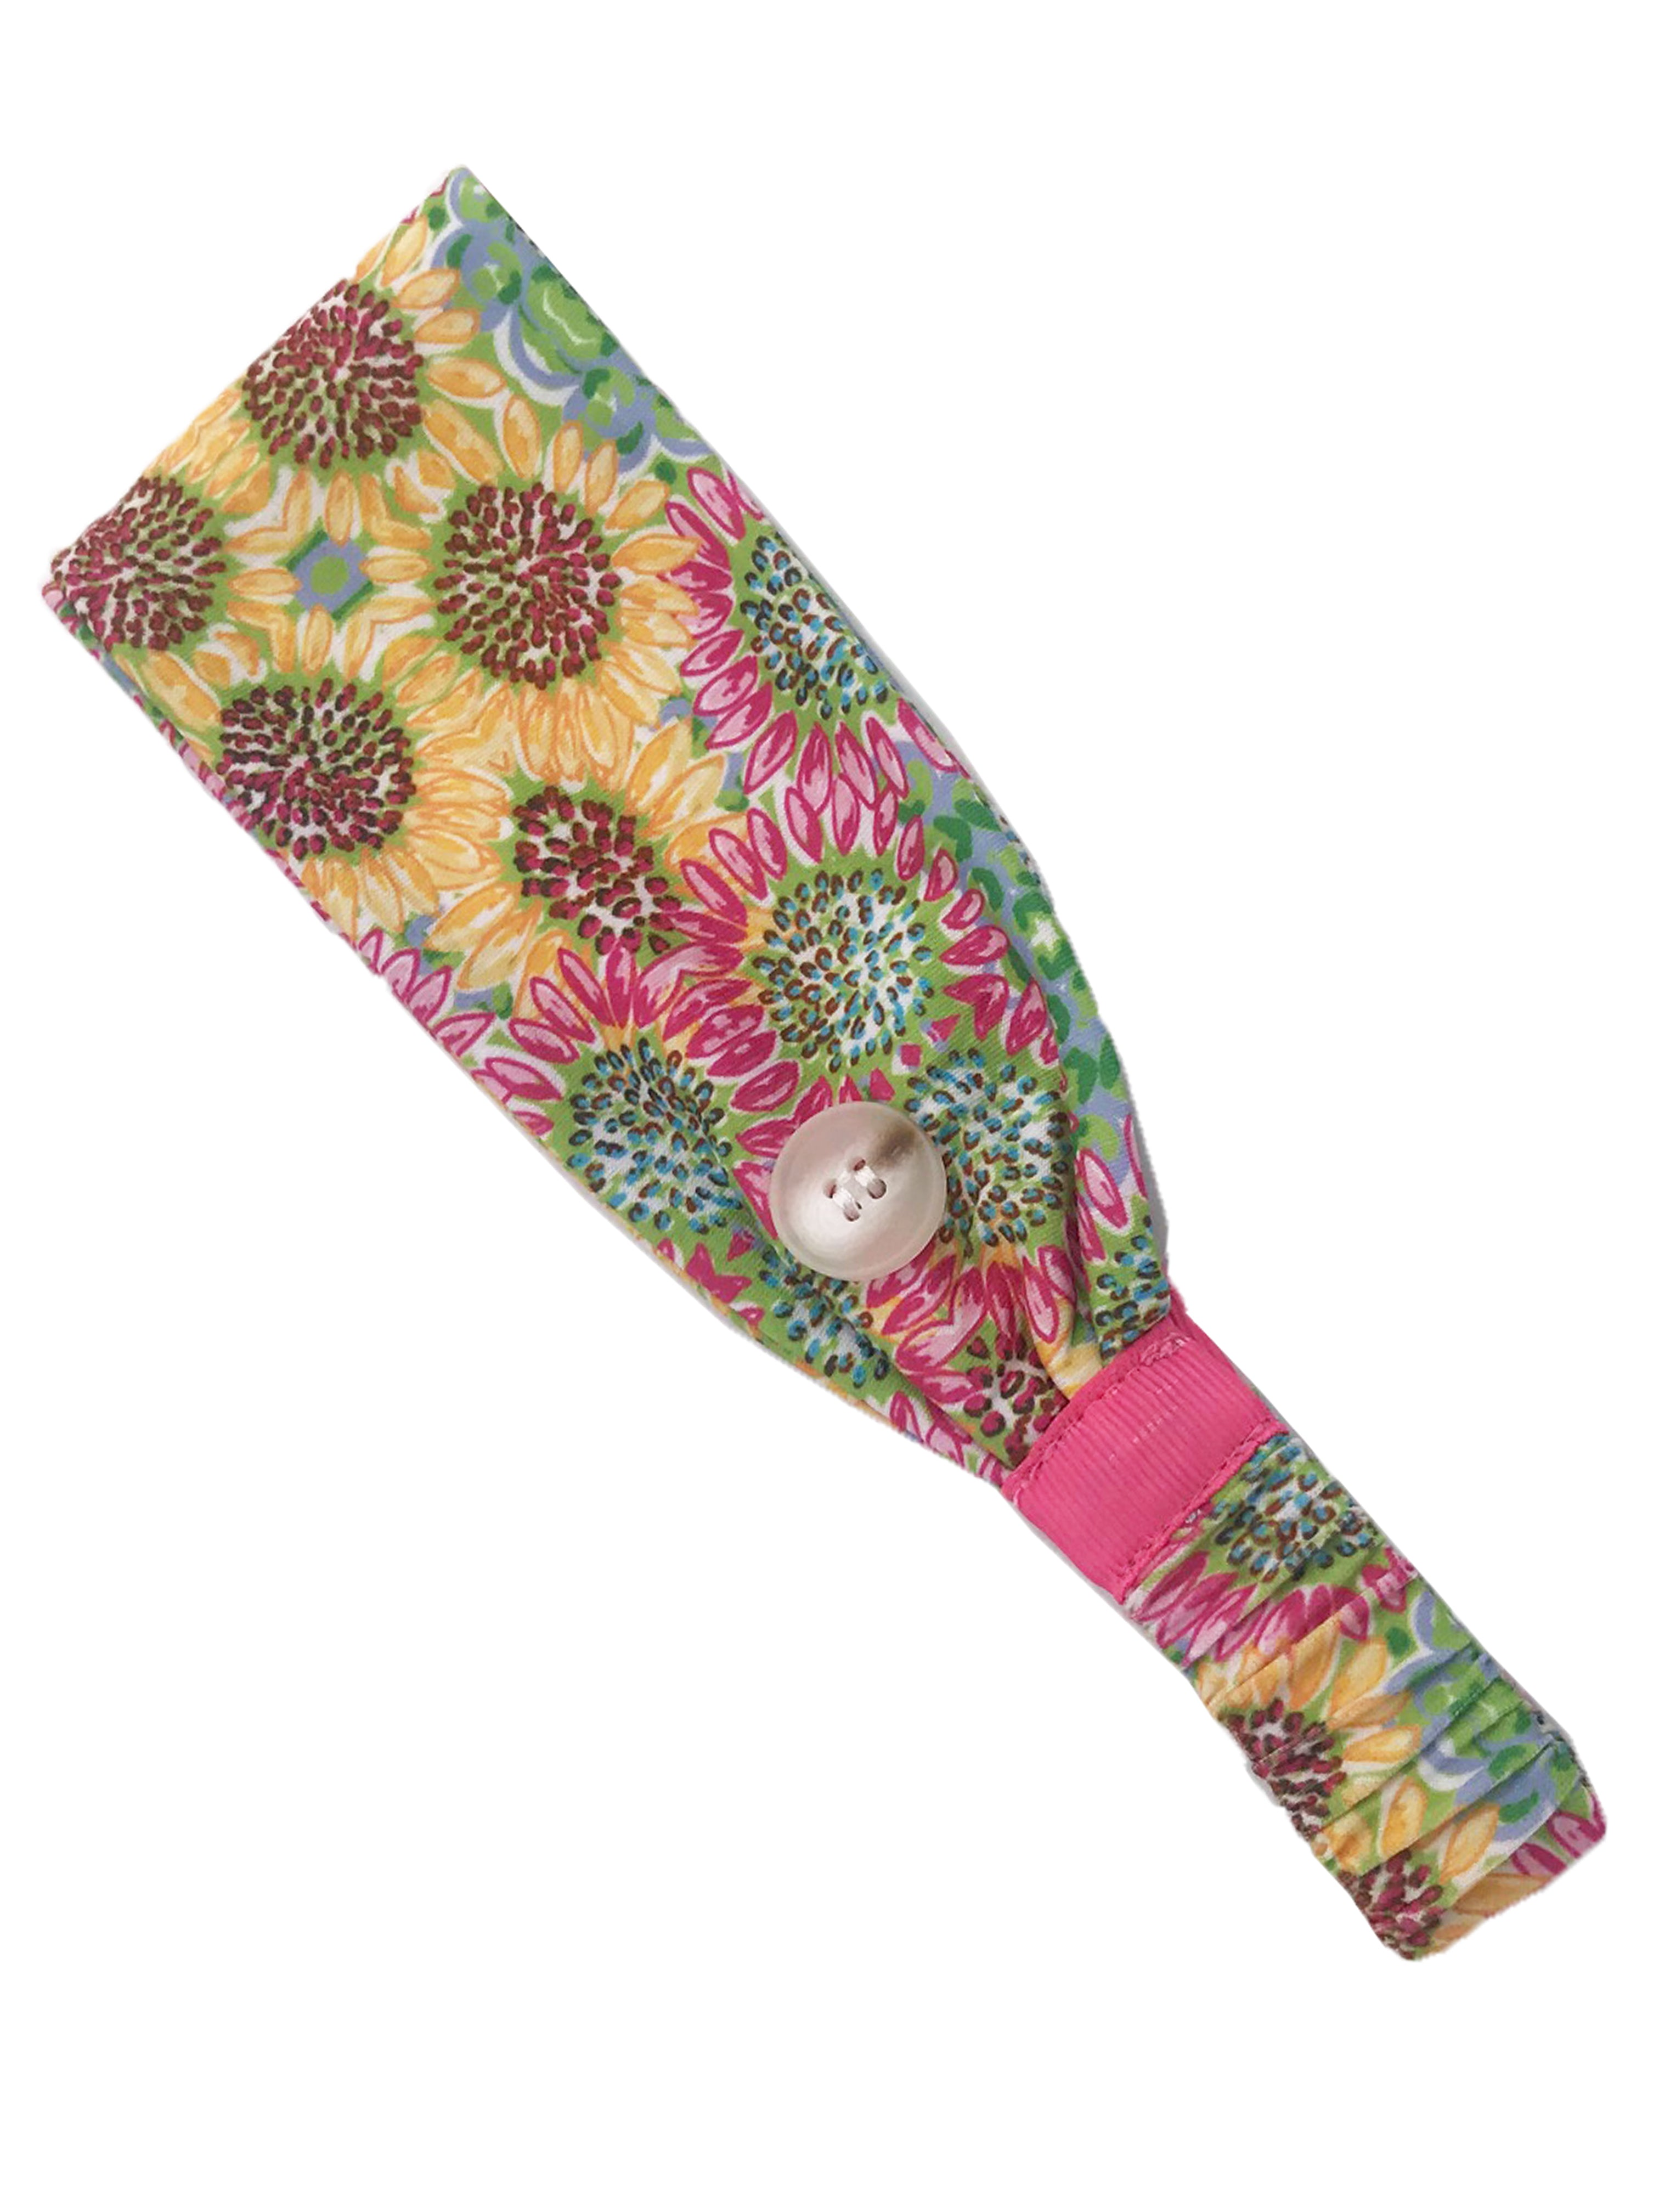 HB-2020 Adult Headband Sunflower Pink Yellow